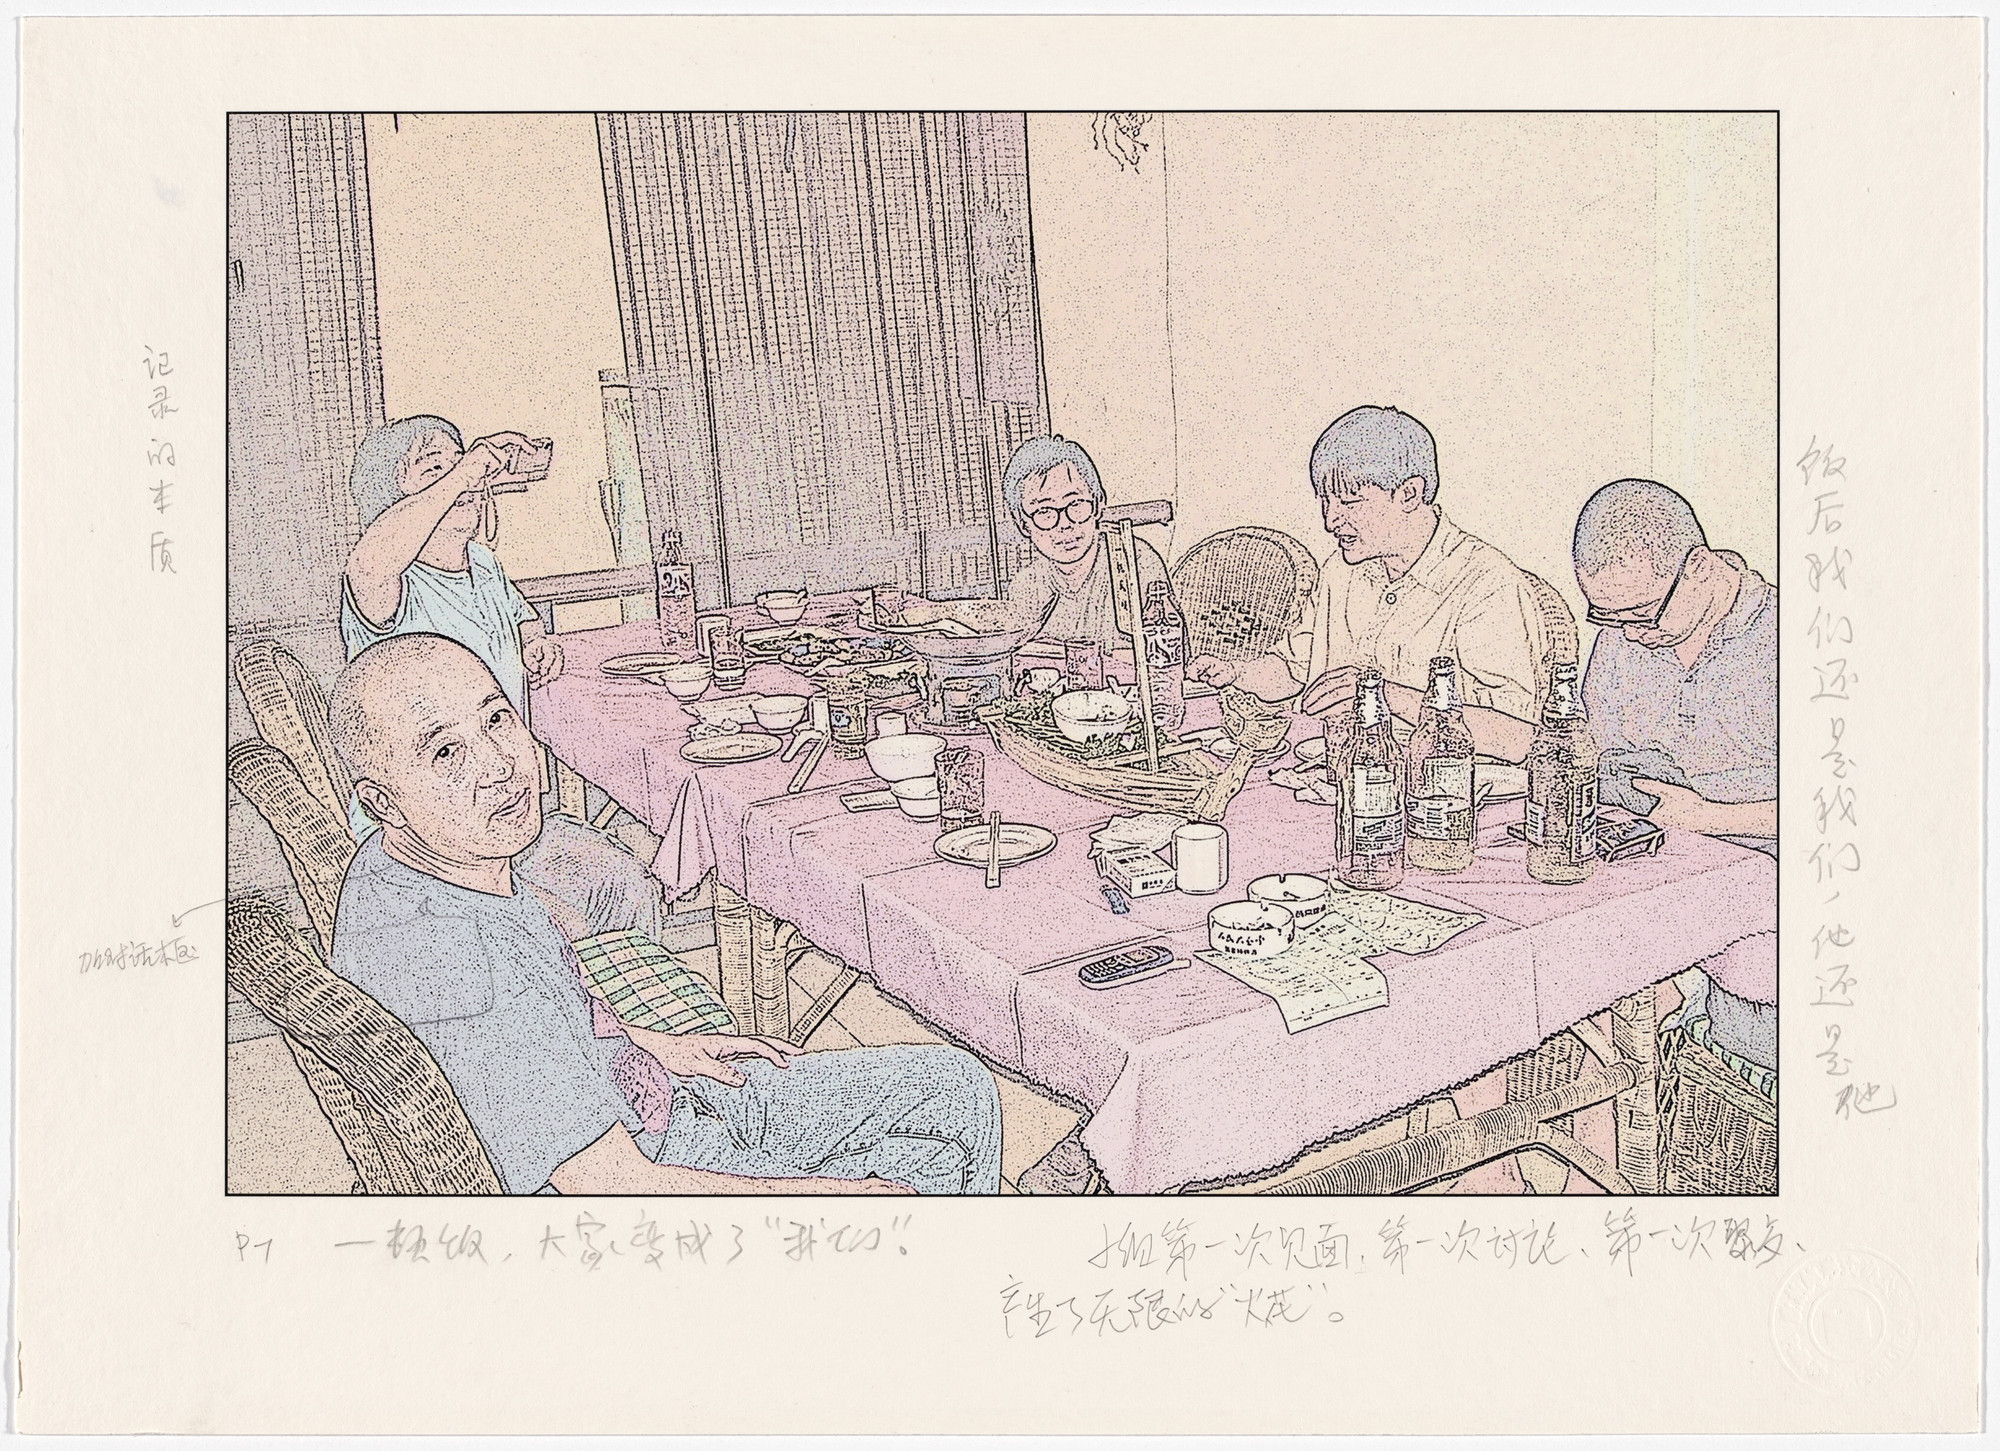 Polit-Sheer-Form Office (PSFO), Hong Hao, Xiao Yu, Song Dong, Liu Jianhua, Leng Lin. P7 from Lianhuanhua (Comic Book). 2005